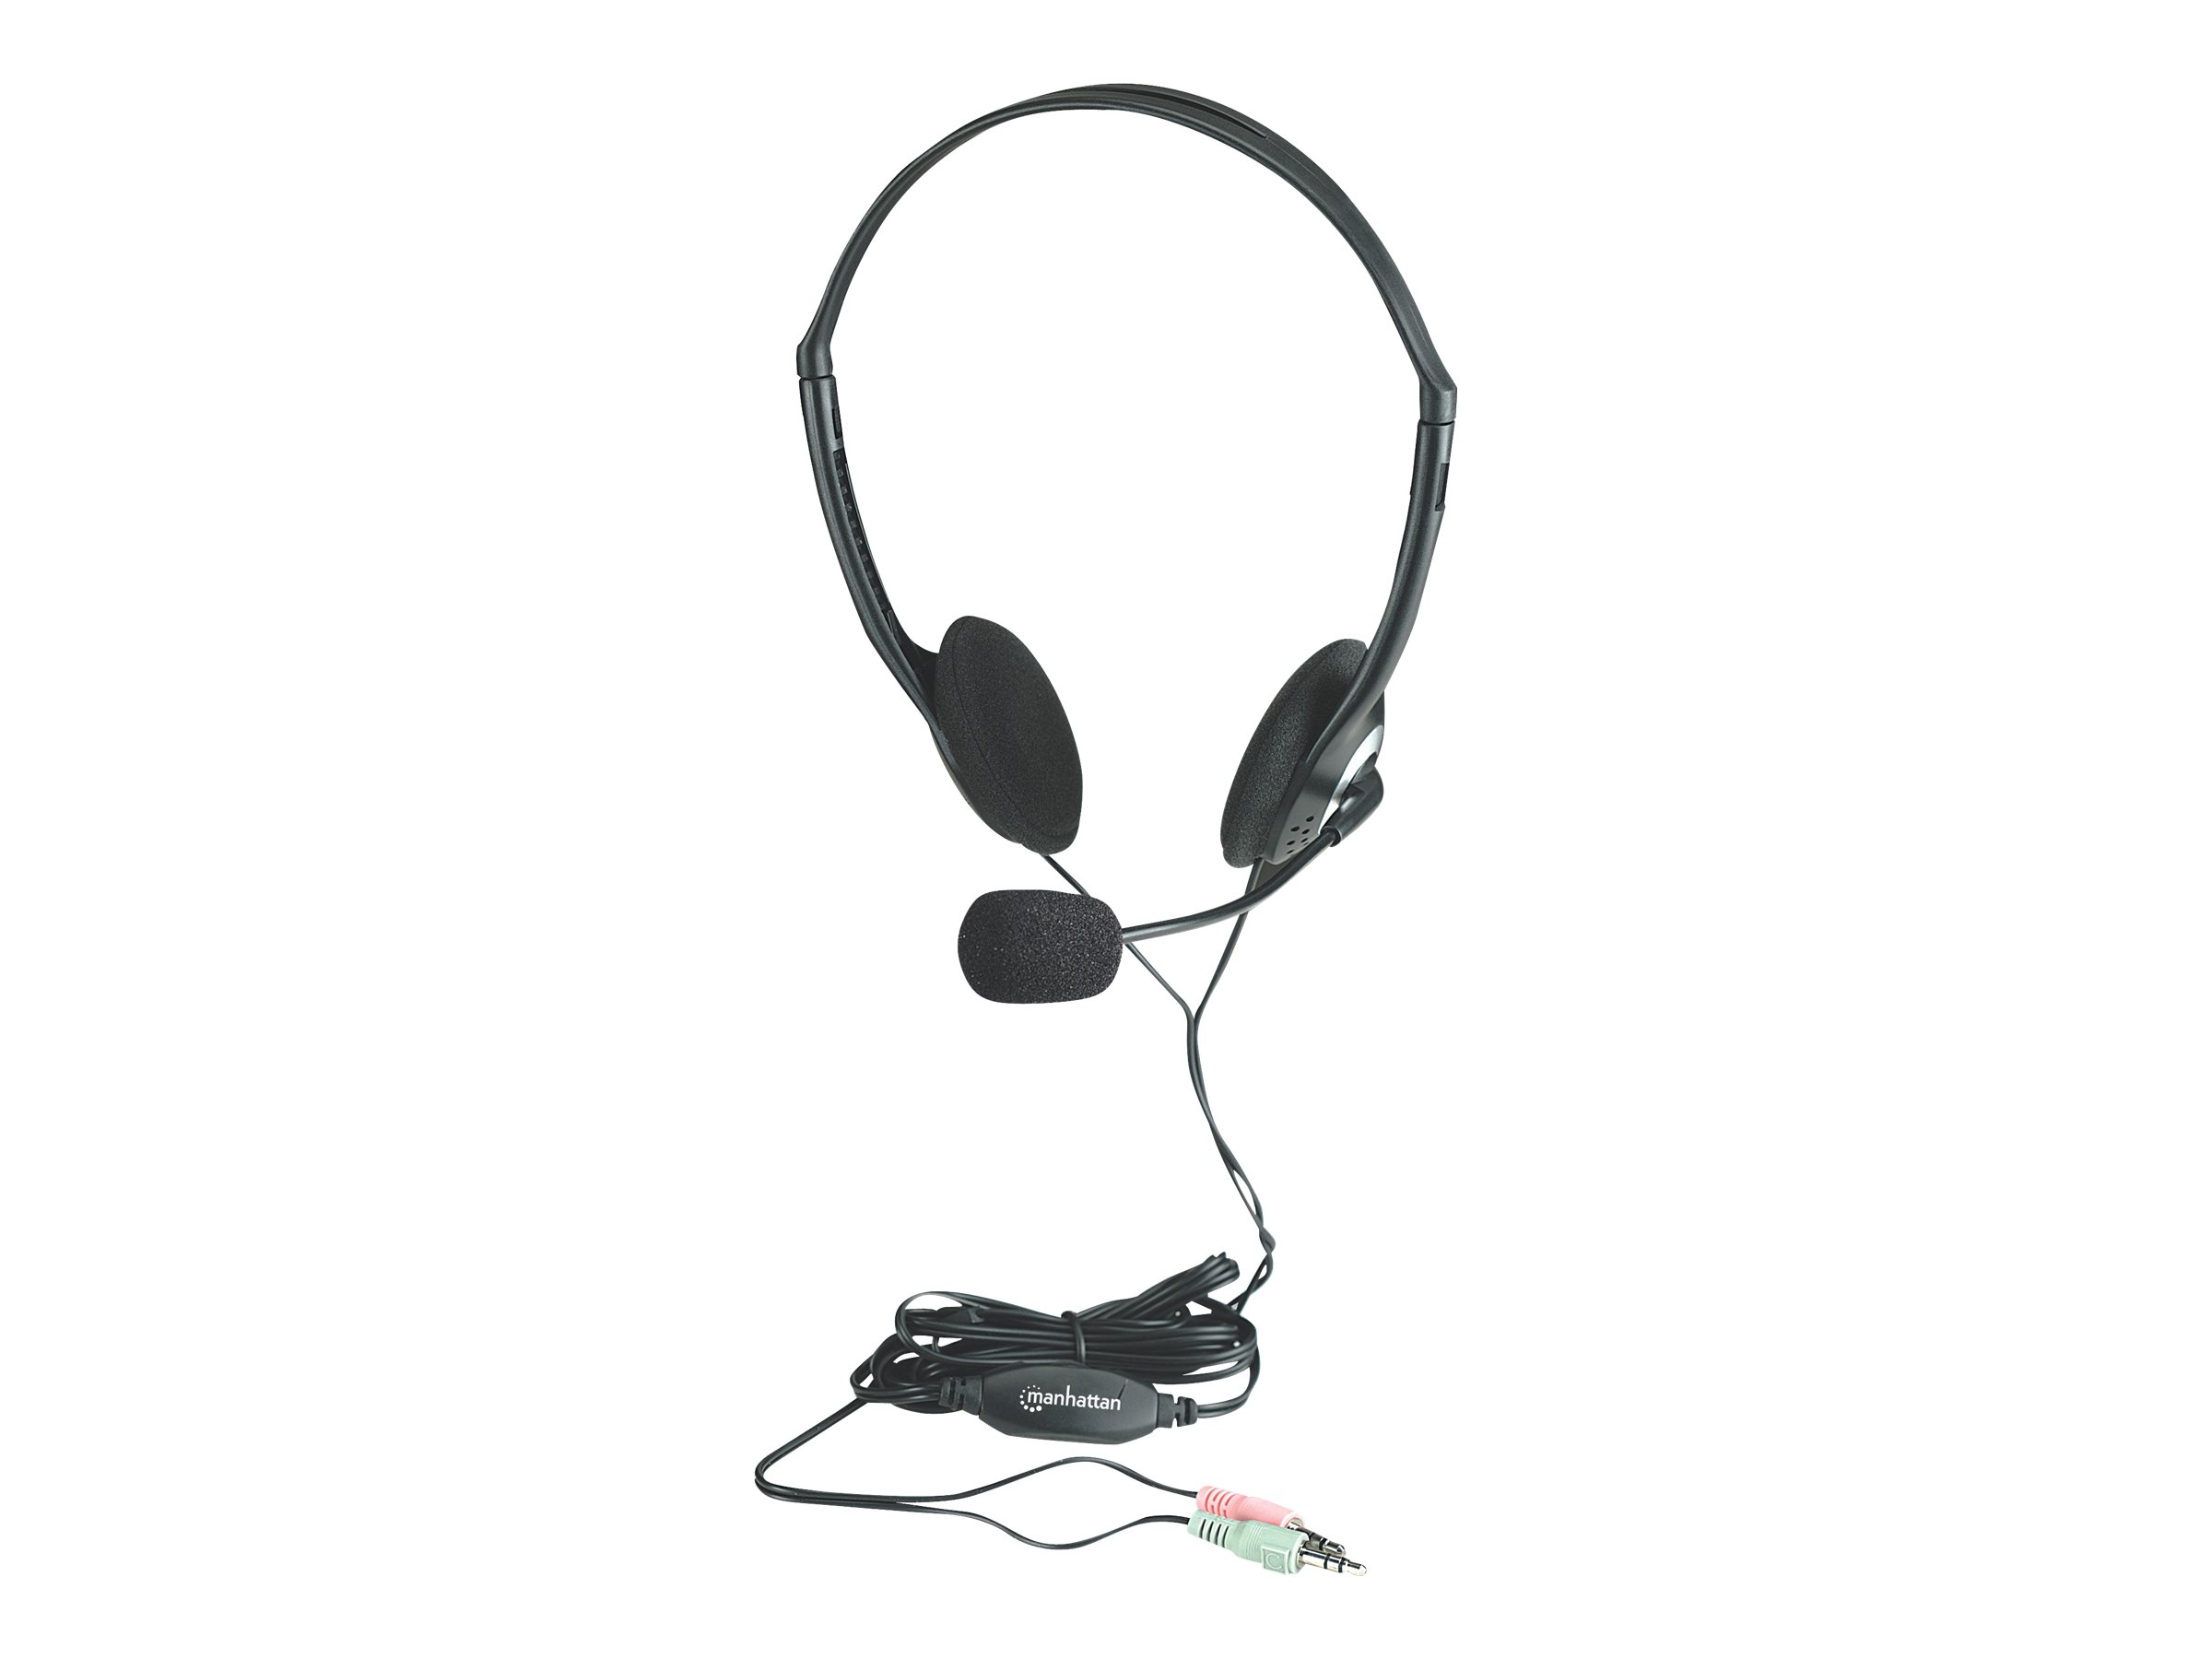 Manhattan Stereo Headset, Lightweight, Adjustable Microphone, In-Line Volume Control, Foam Earpads, 2x 3.5mm stereo jacks/plugs, cable 2m, Black, Three Year Warranty, Blister